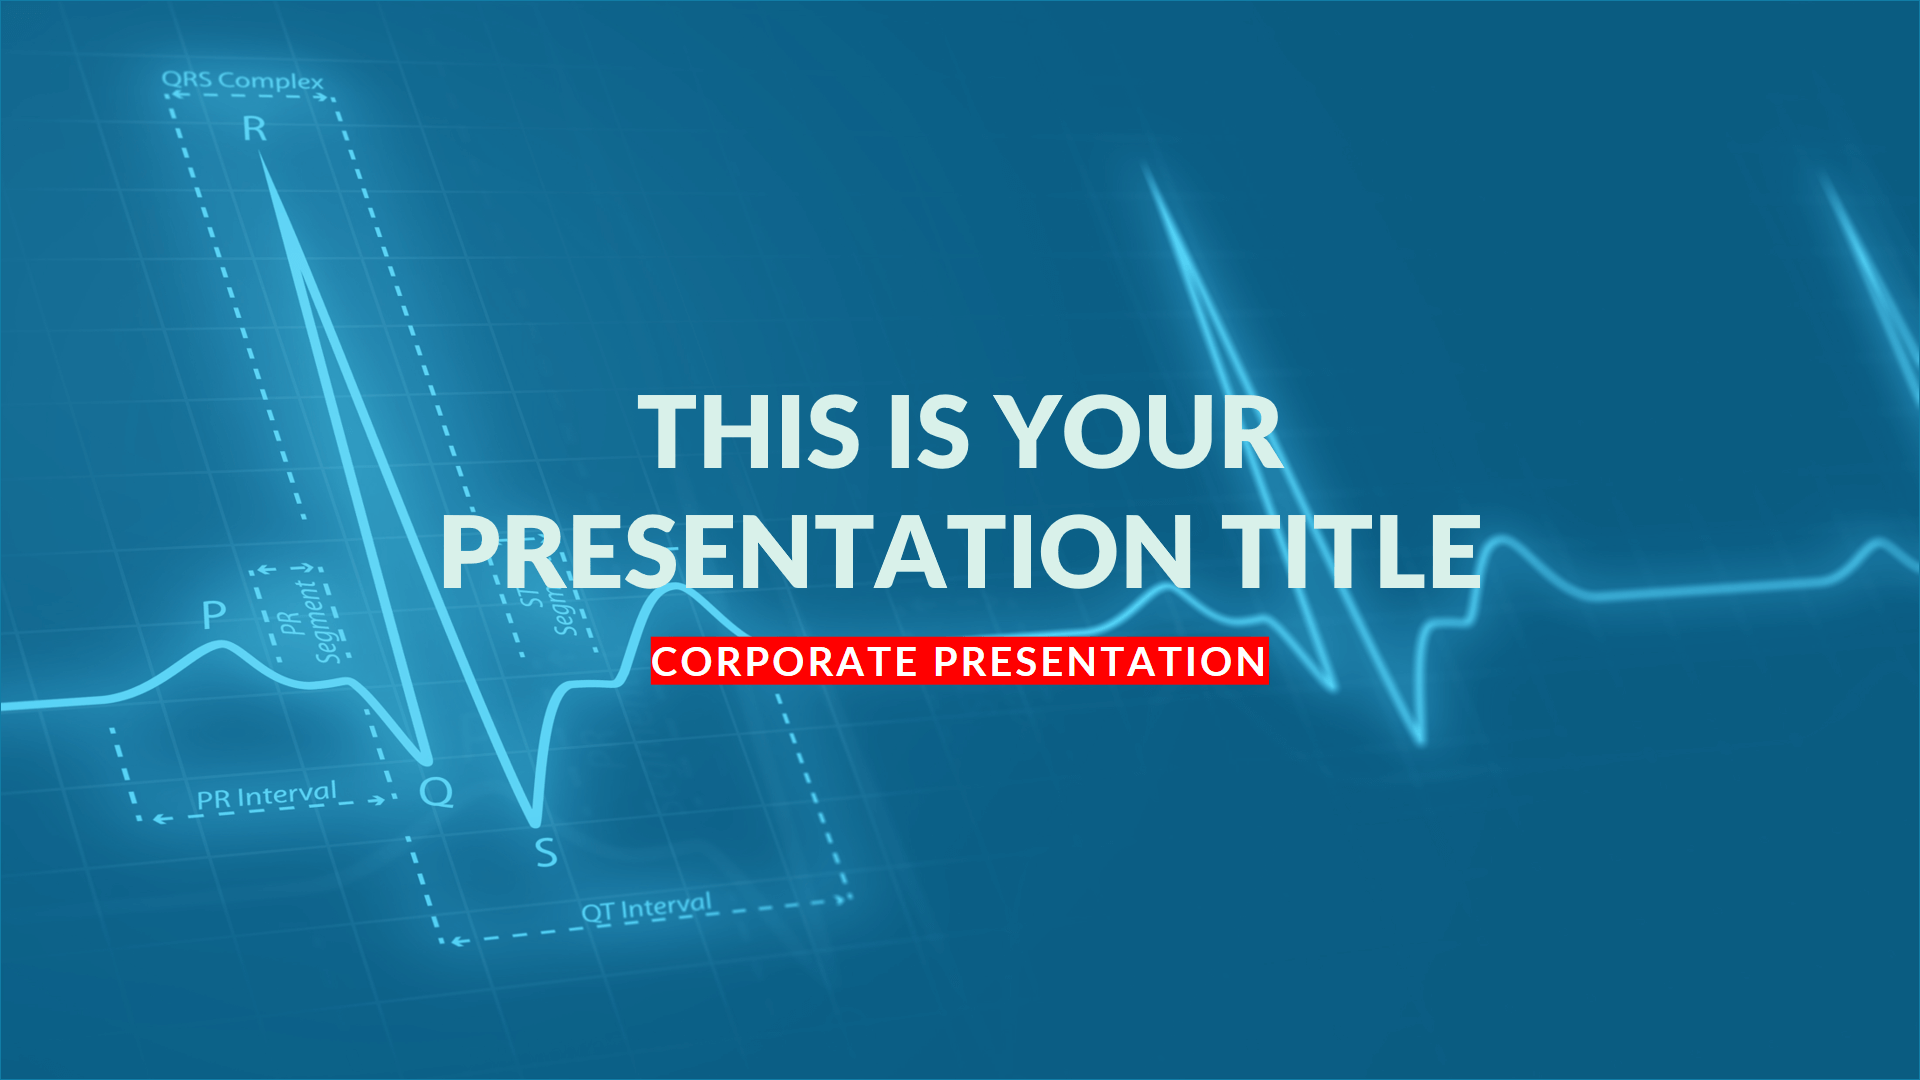 altra medical free presentation template